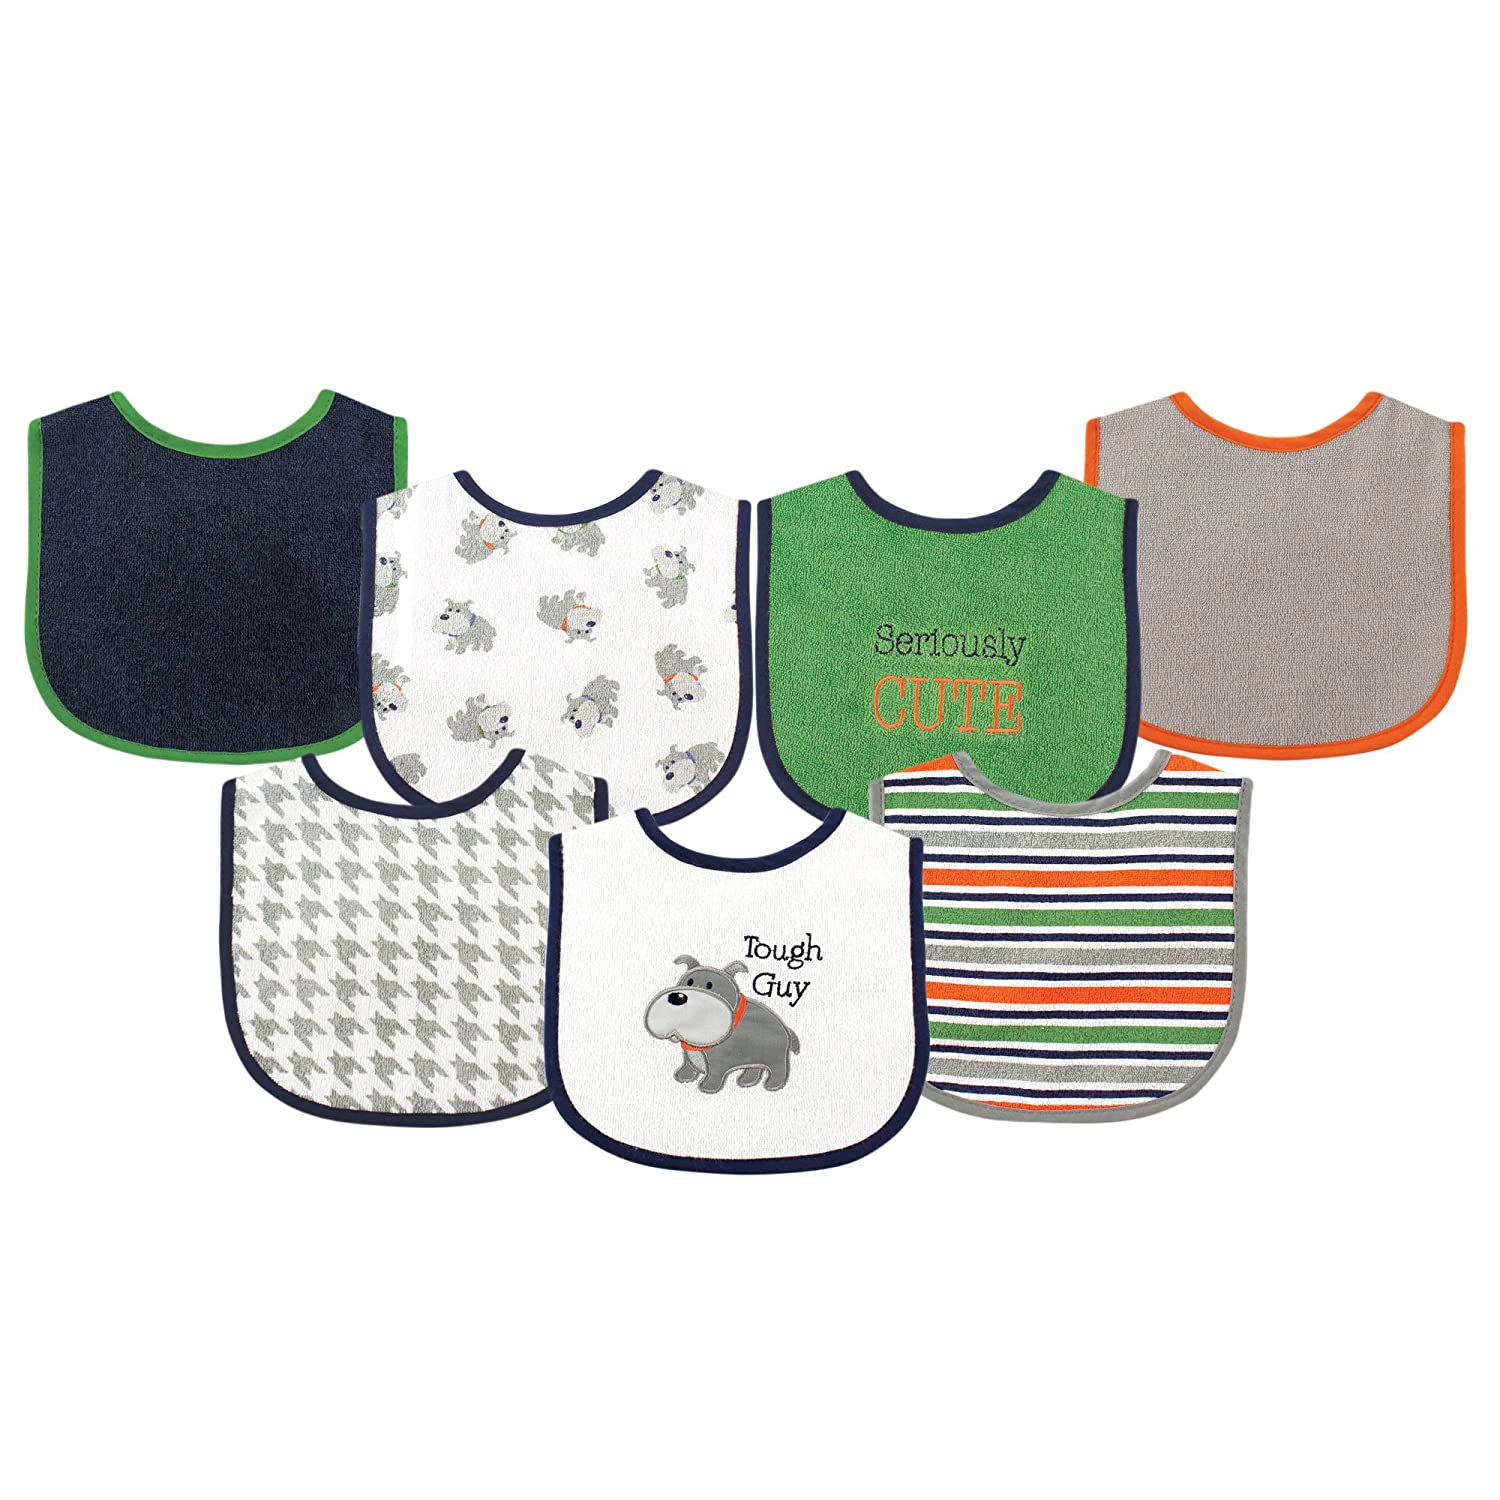 Luvable Friends Unisex Baby Cotton Terry Drooler Bibs with PEVA Back, Dog, One Size